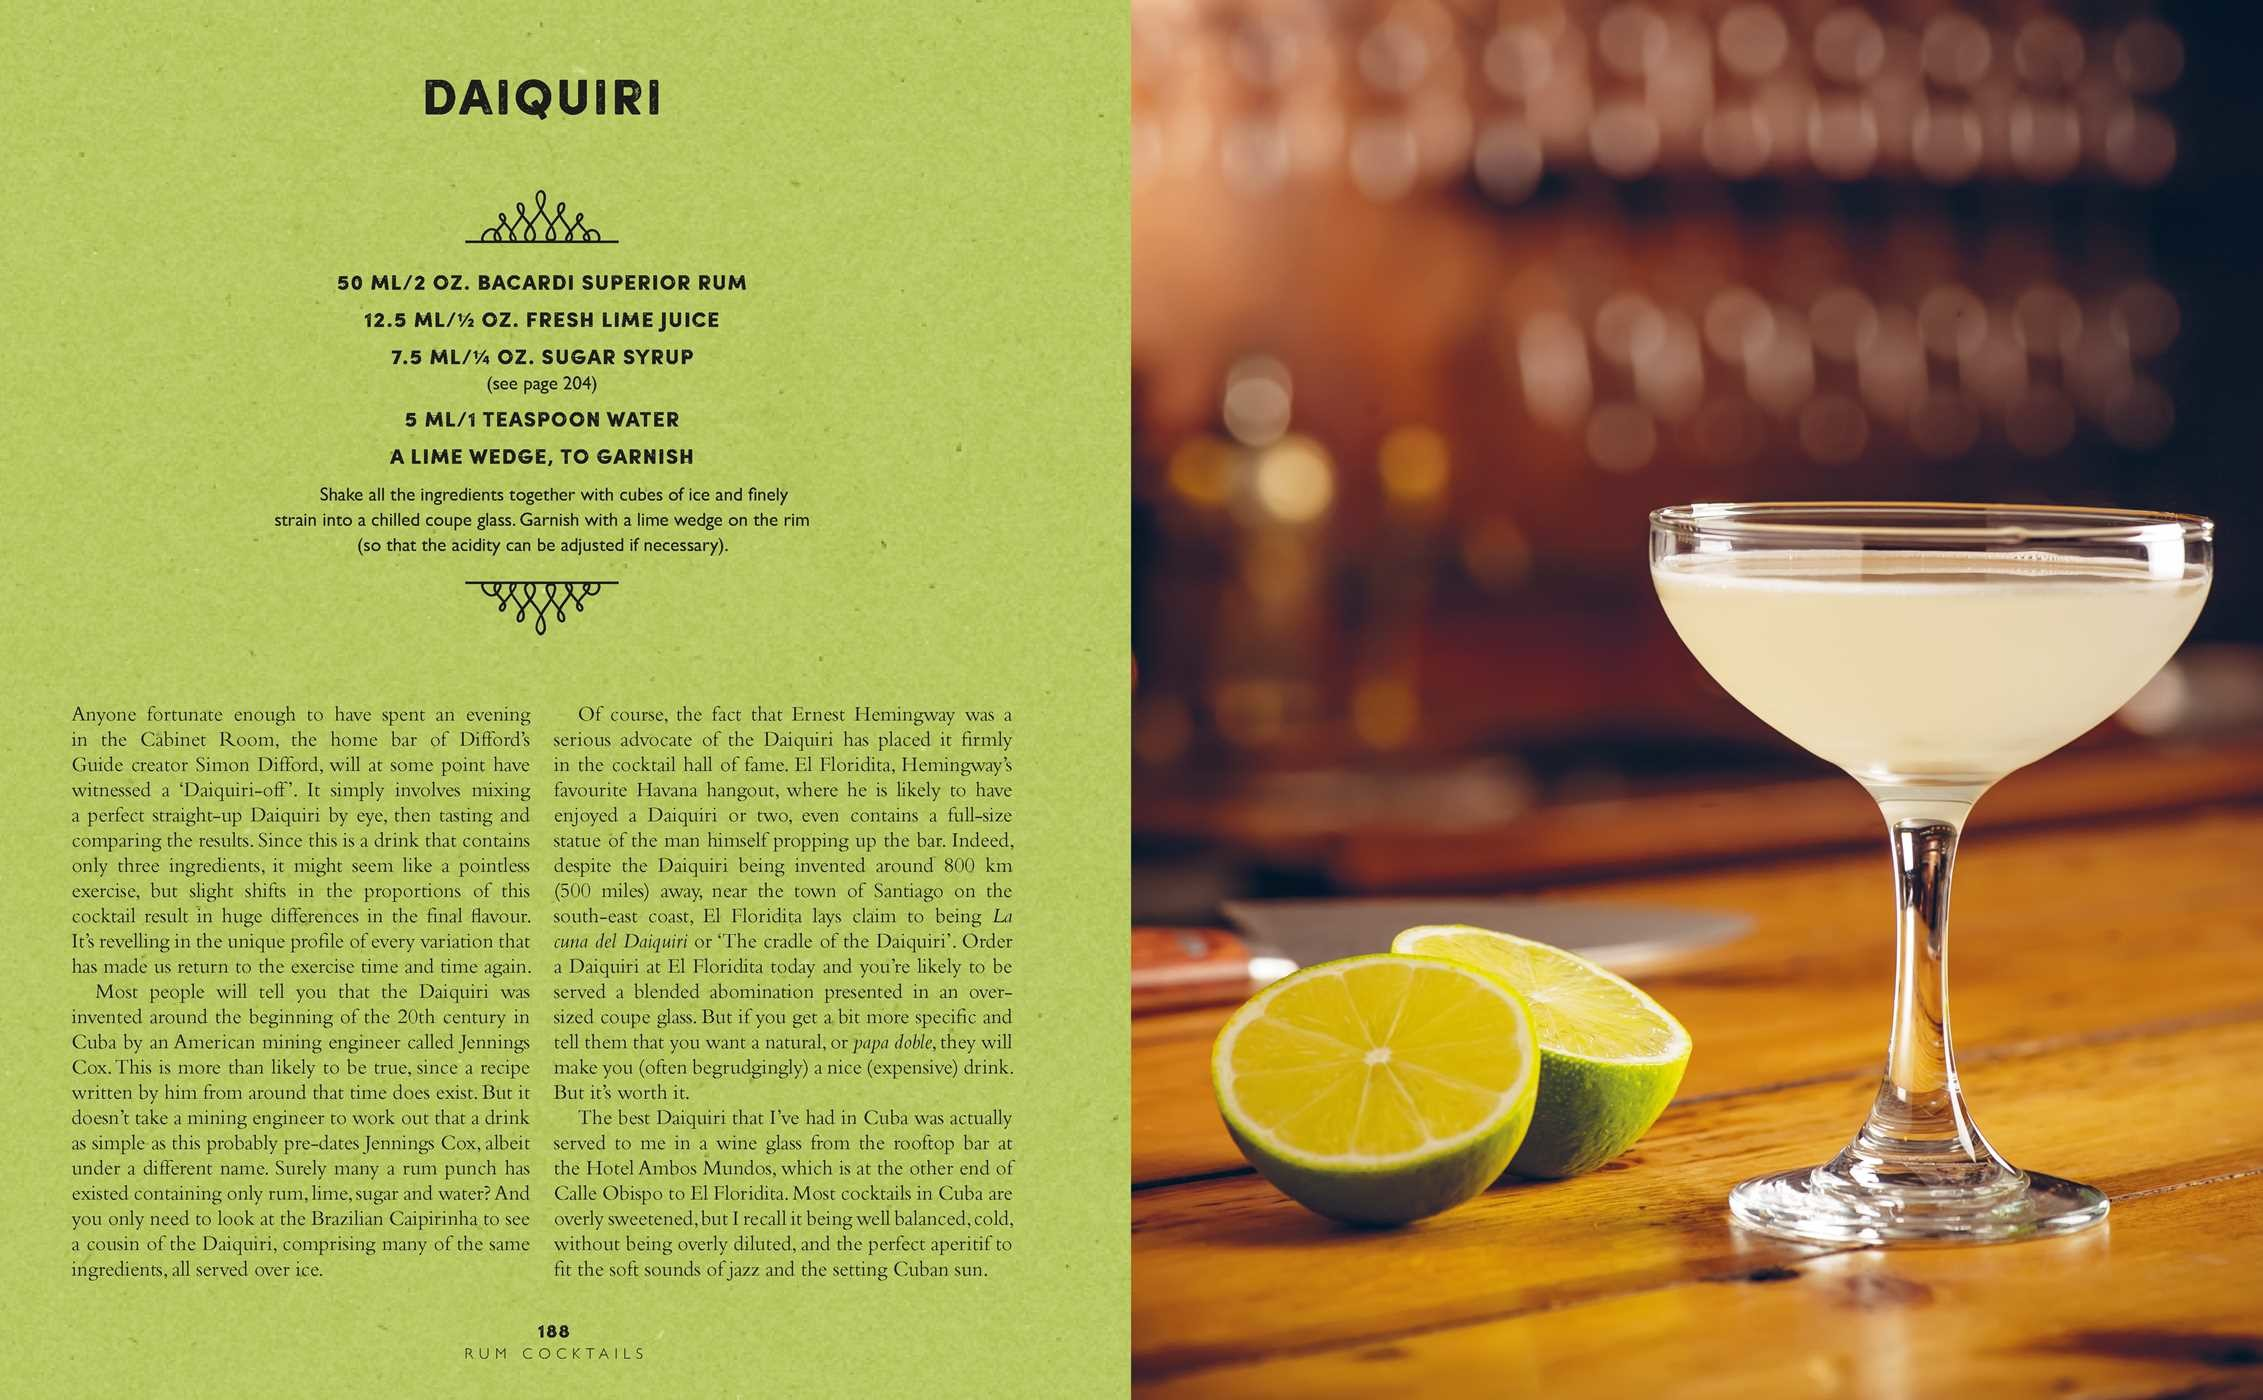 The curious bartenders rum revolution 9781849758239.in01